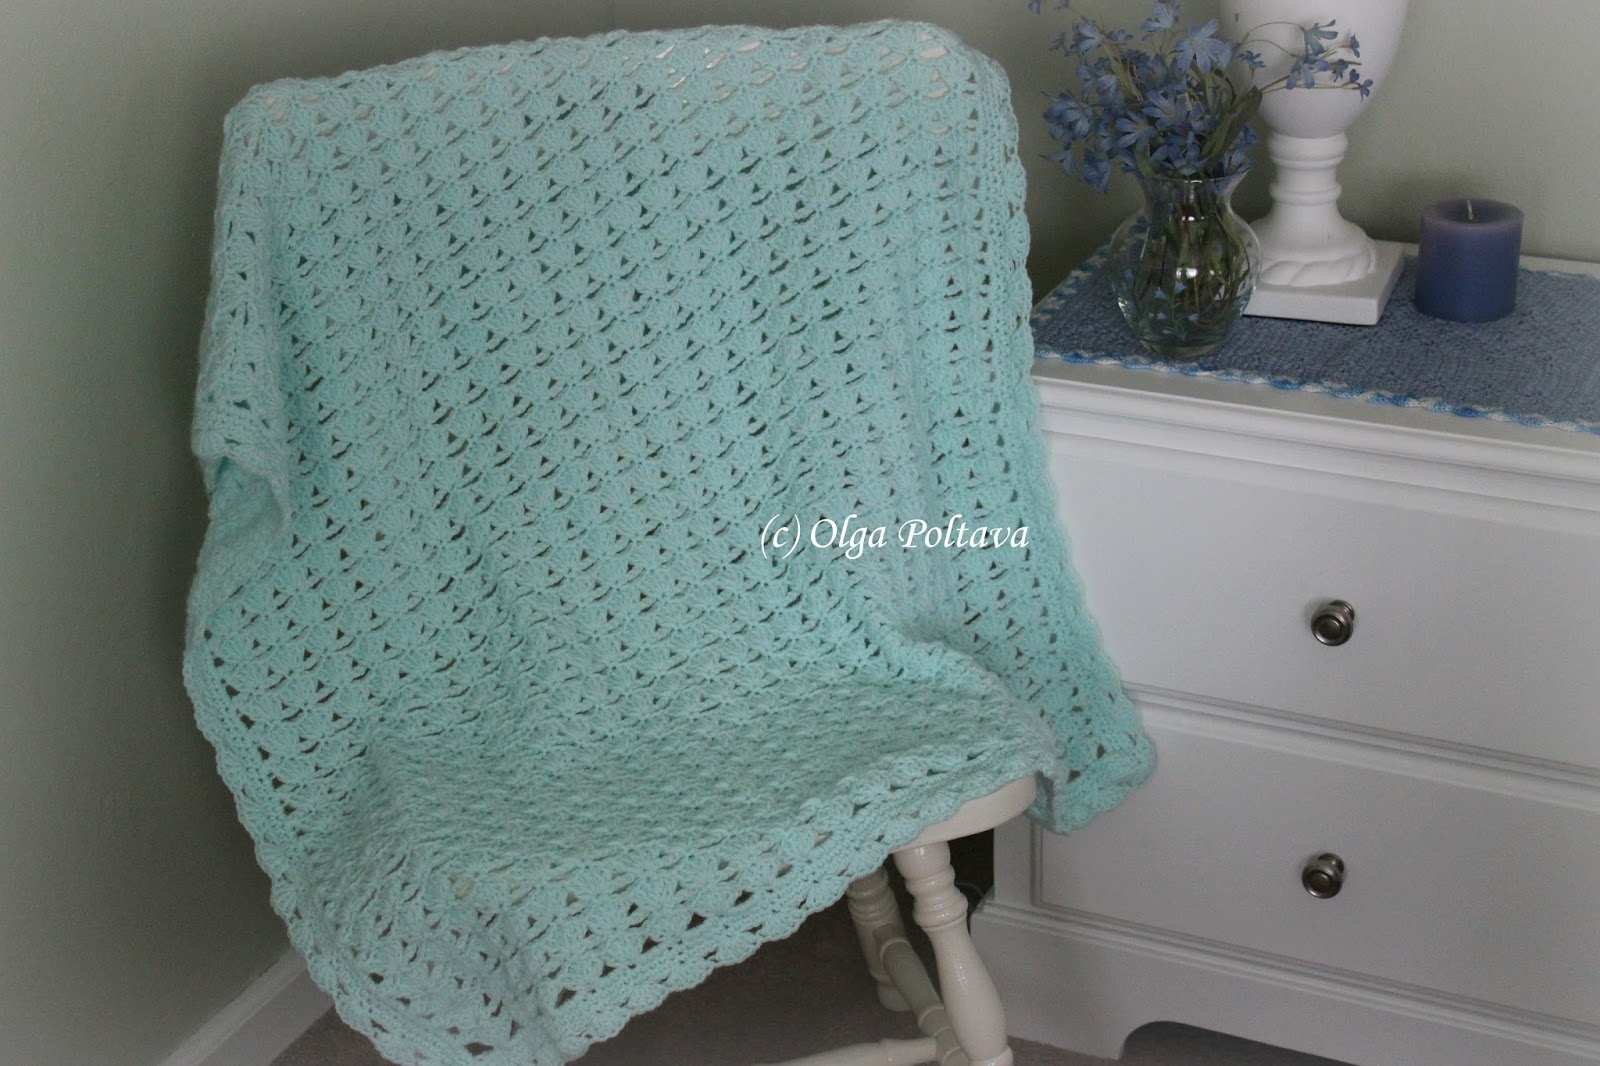 Crochet Patterns Baby Quilts : The blanket has lacy texture, yet its not too open. I used 100% ...